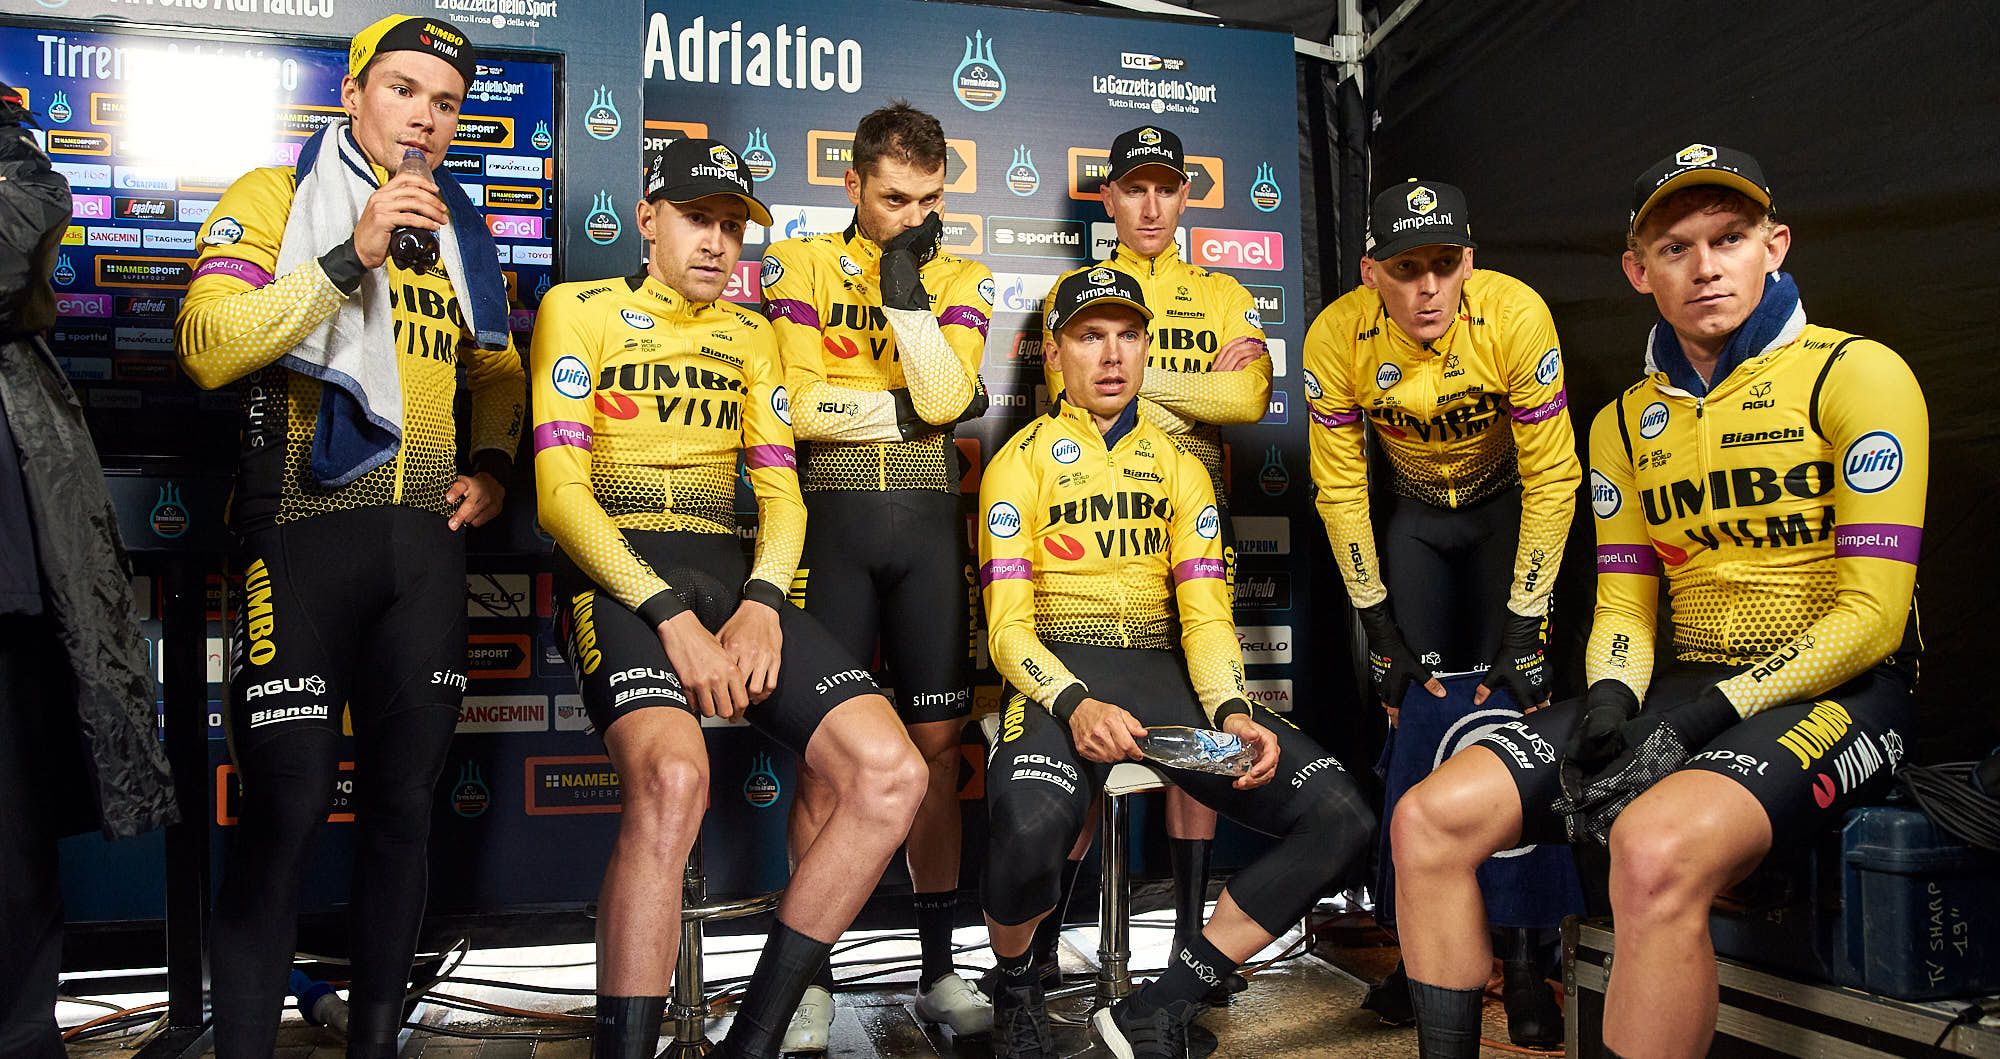 Jumbo-Visma cycling team watching results after finishing